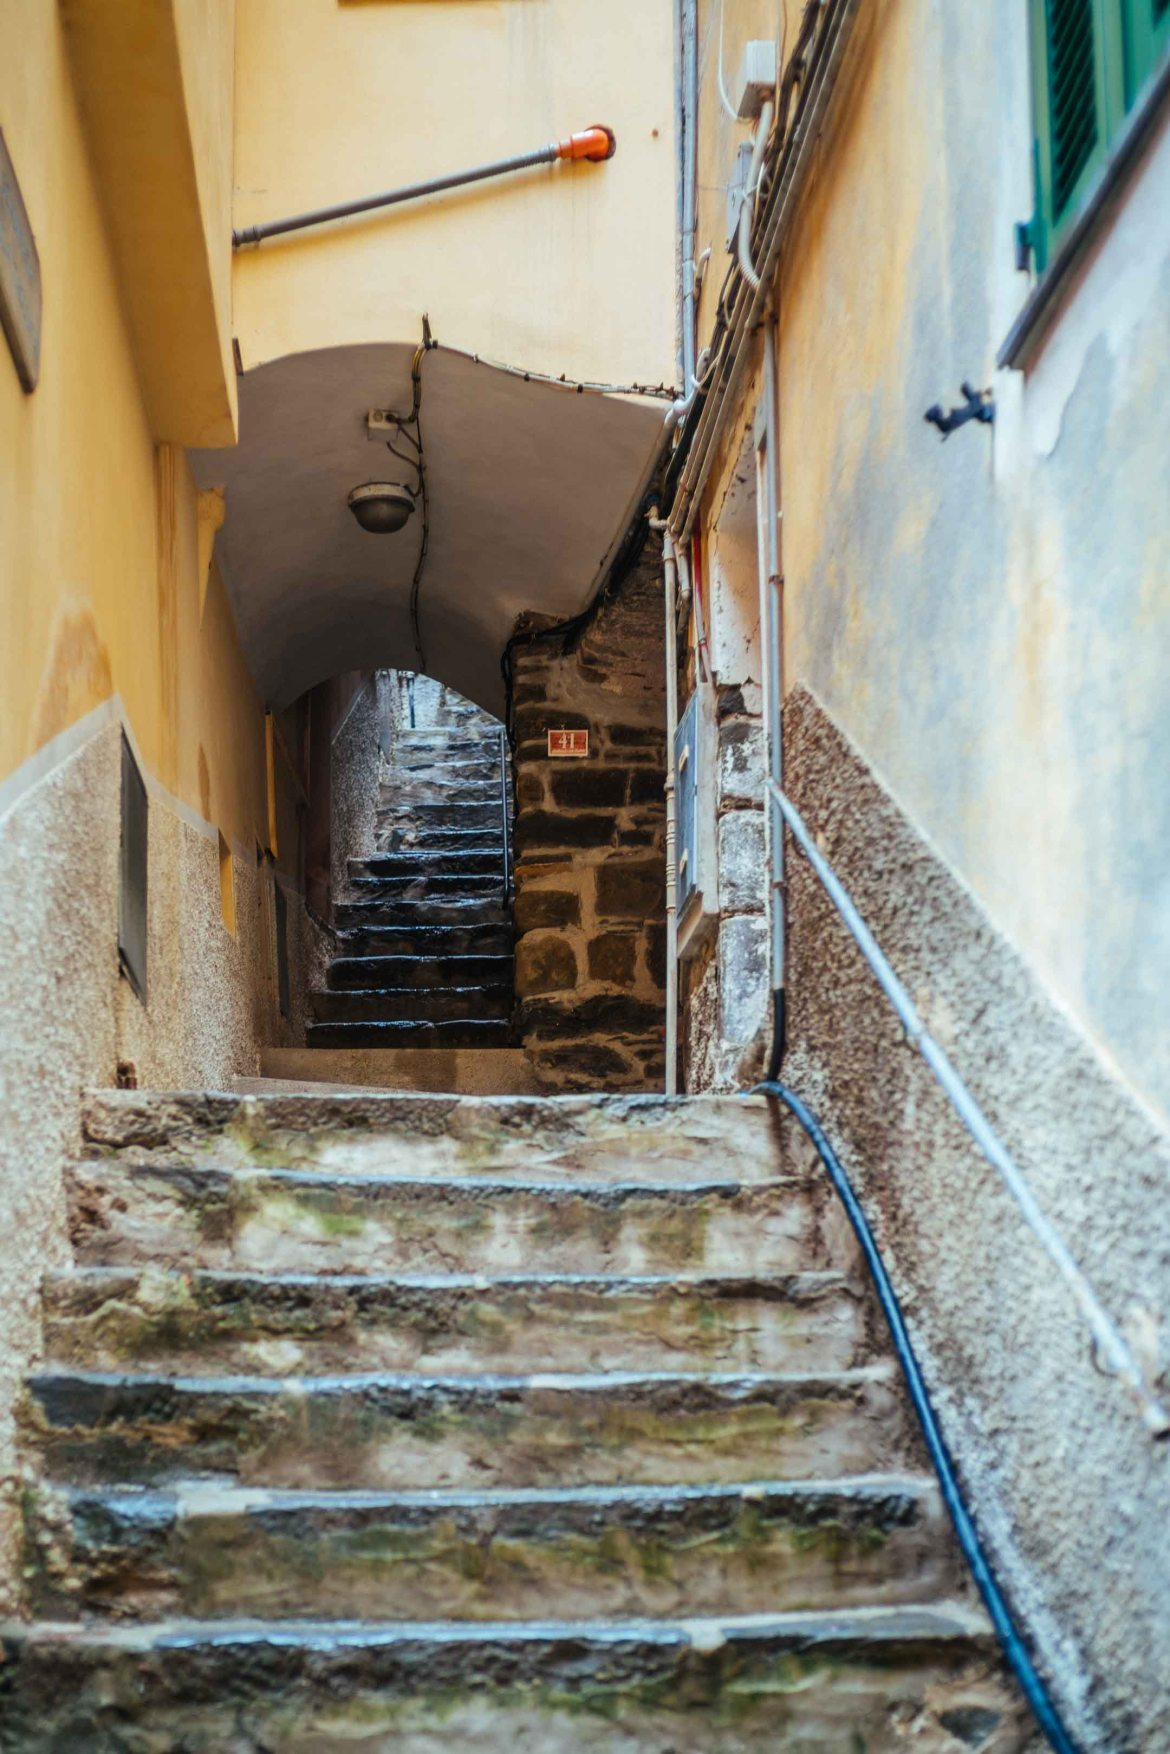 Cinque Terre is one of the most popular vacation destinations in Italy, The Taste Edit recommends finding places that are different and local during your trip. Find little staircases as you walk around the town exploring like a local.